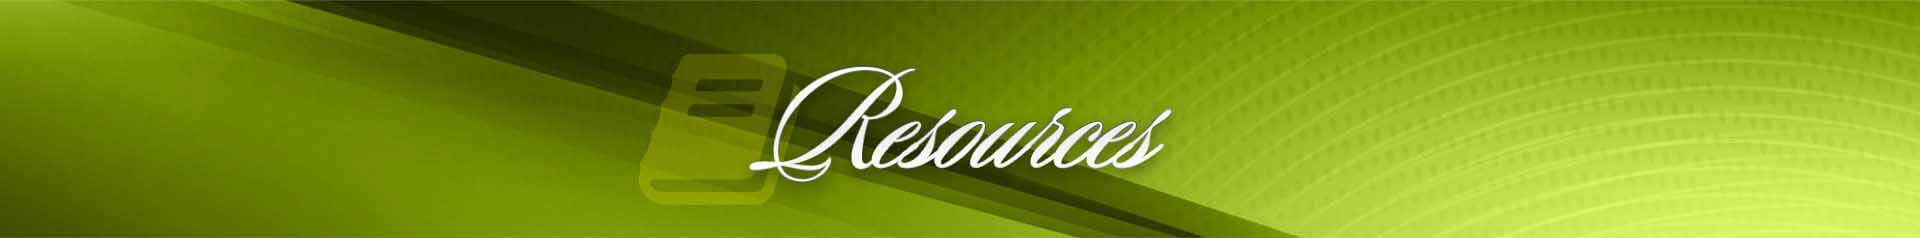 Resurgence counseling services